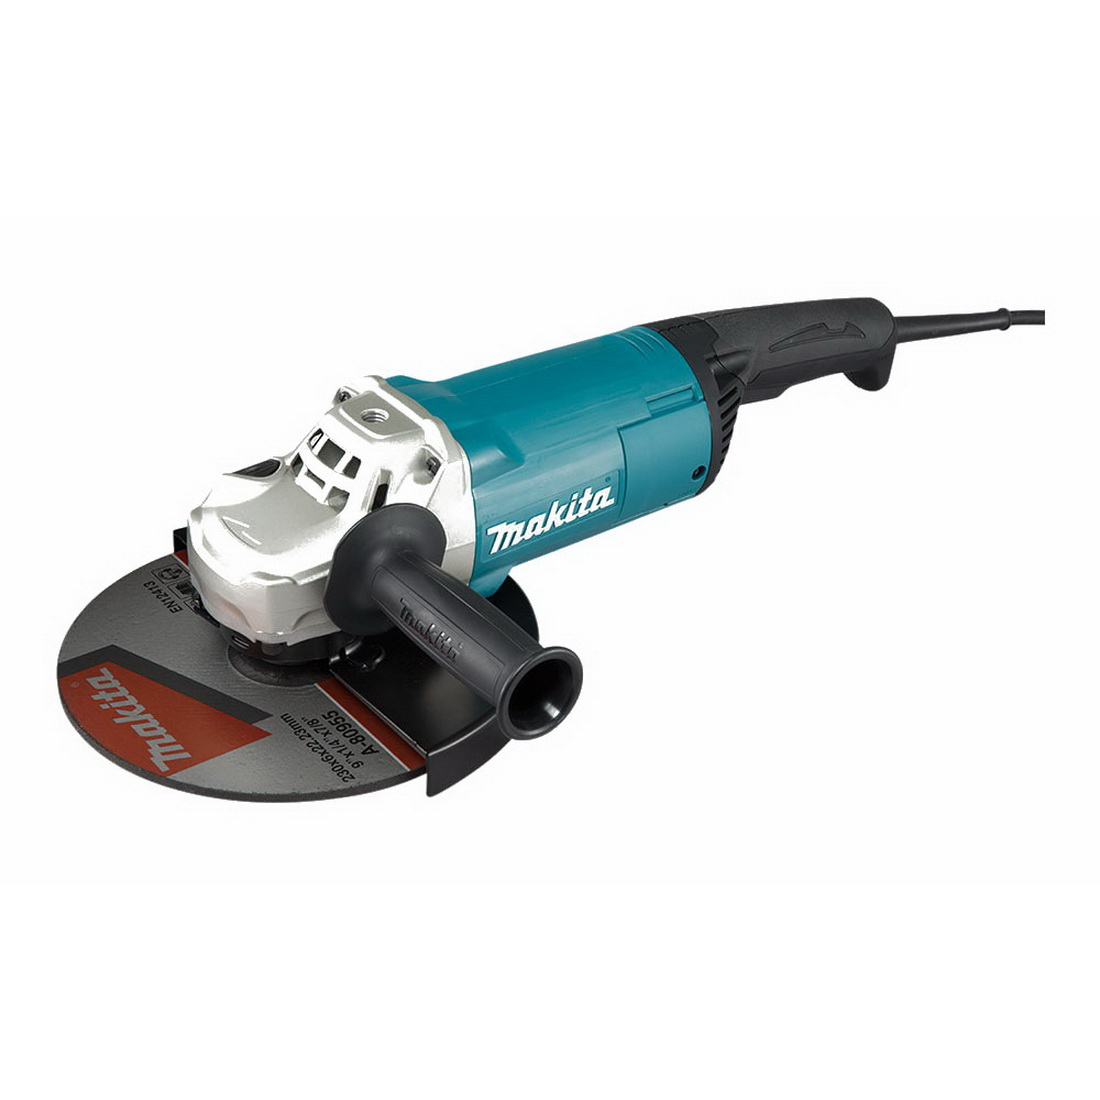 2200W 230mm Angle Grinder